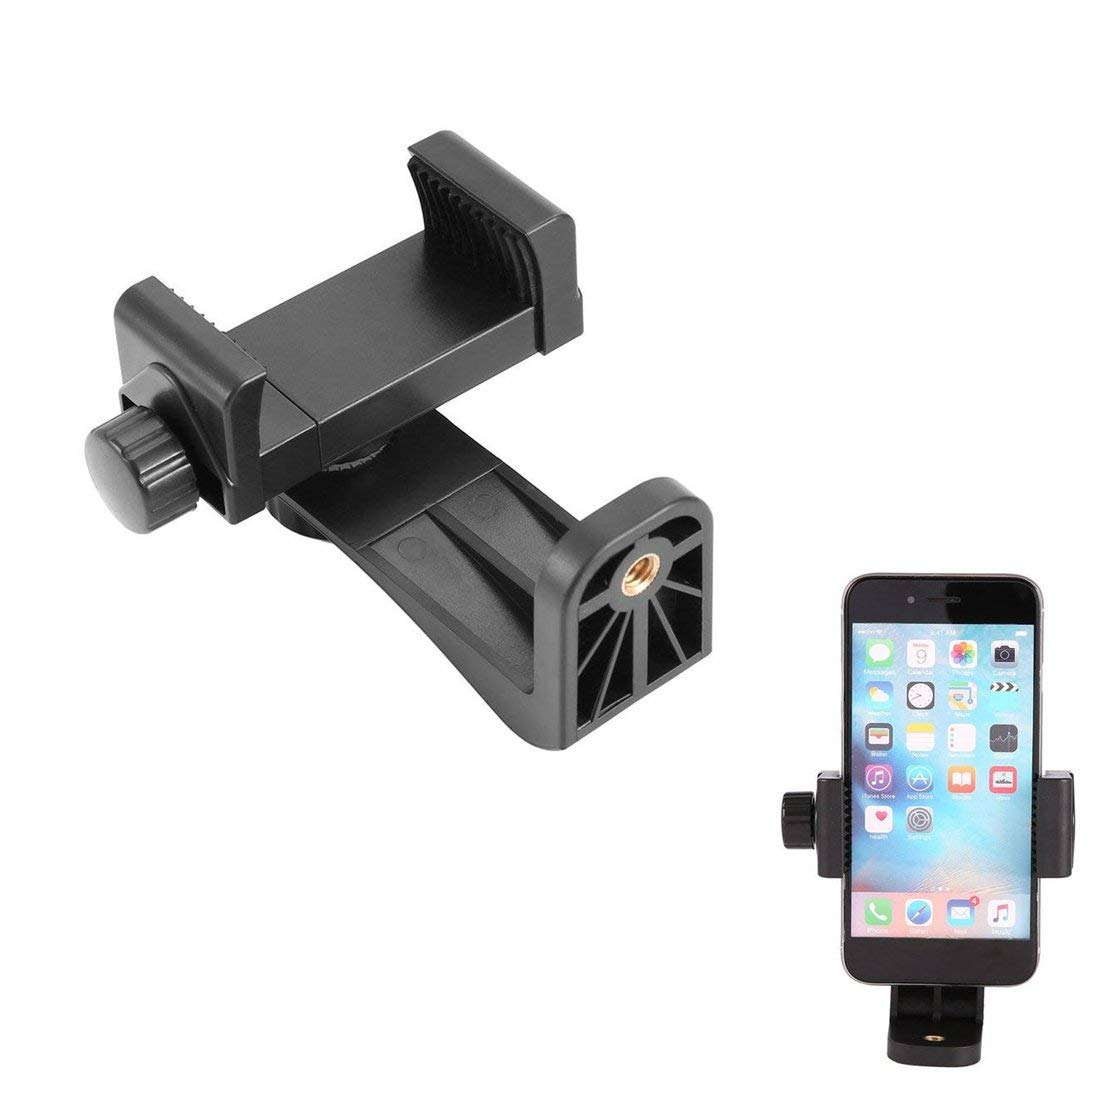 Universal Tripod Mount Clip Vertical Bracket Holder 360 Adapter for Cell Phone Fits All Phones, Rotates Vertical and Horizontal, Adjustable Clamp Cell Phone Holder Mount Adapter